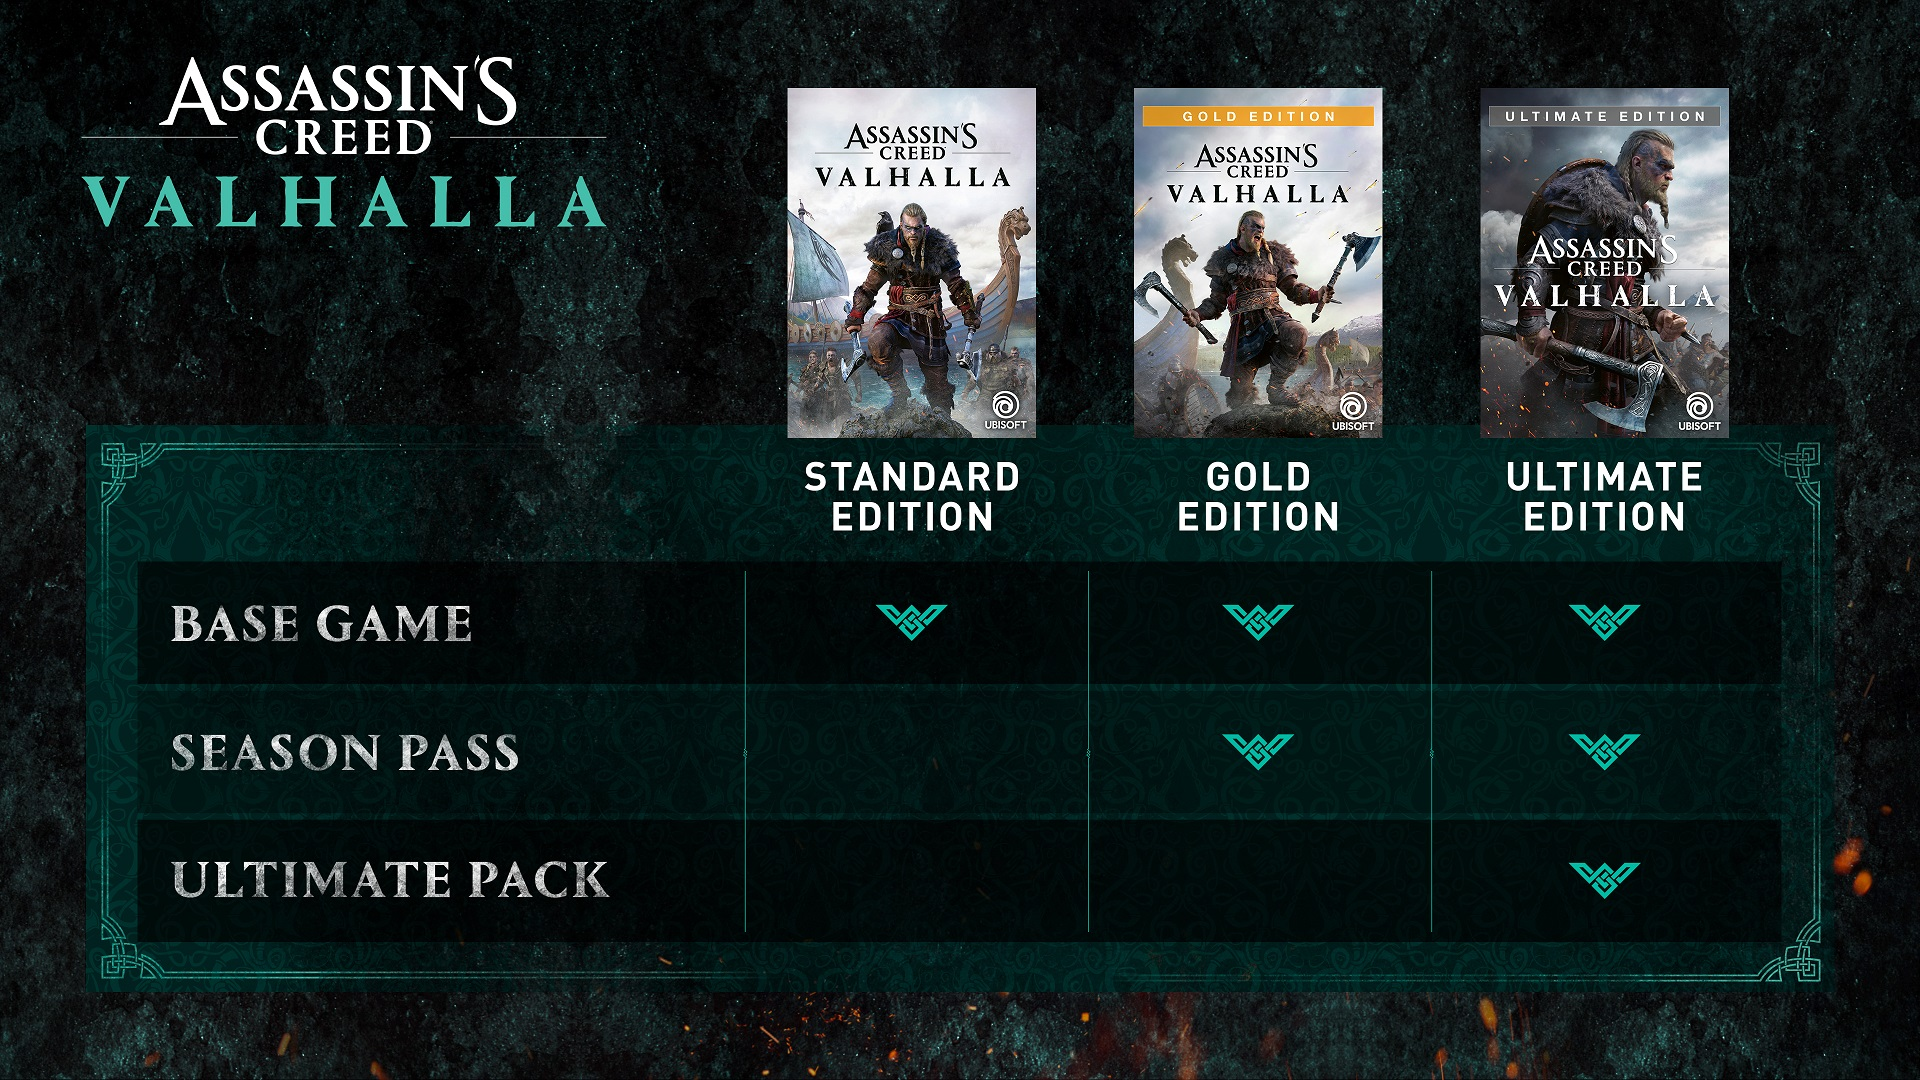 Assassin's Creed Valhalla pre-order